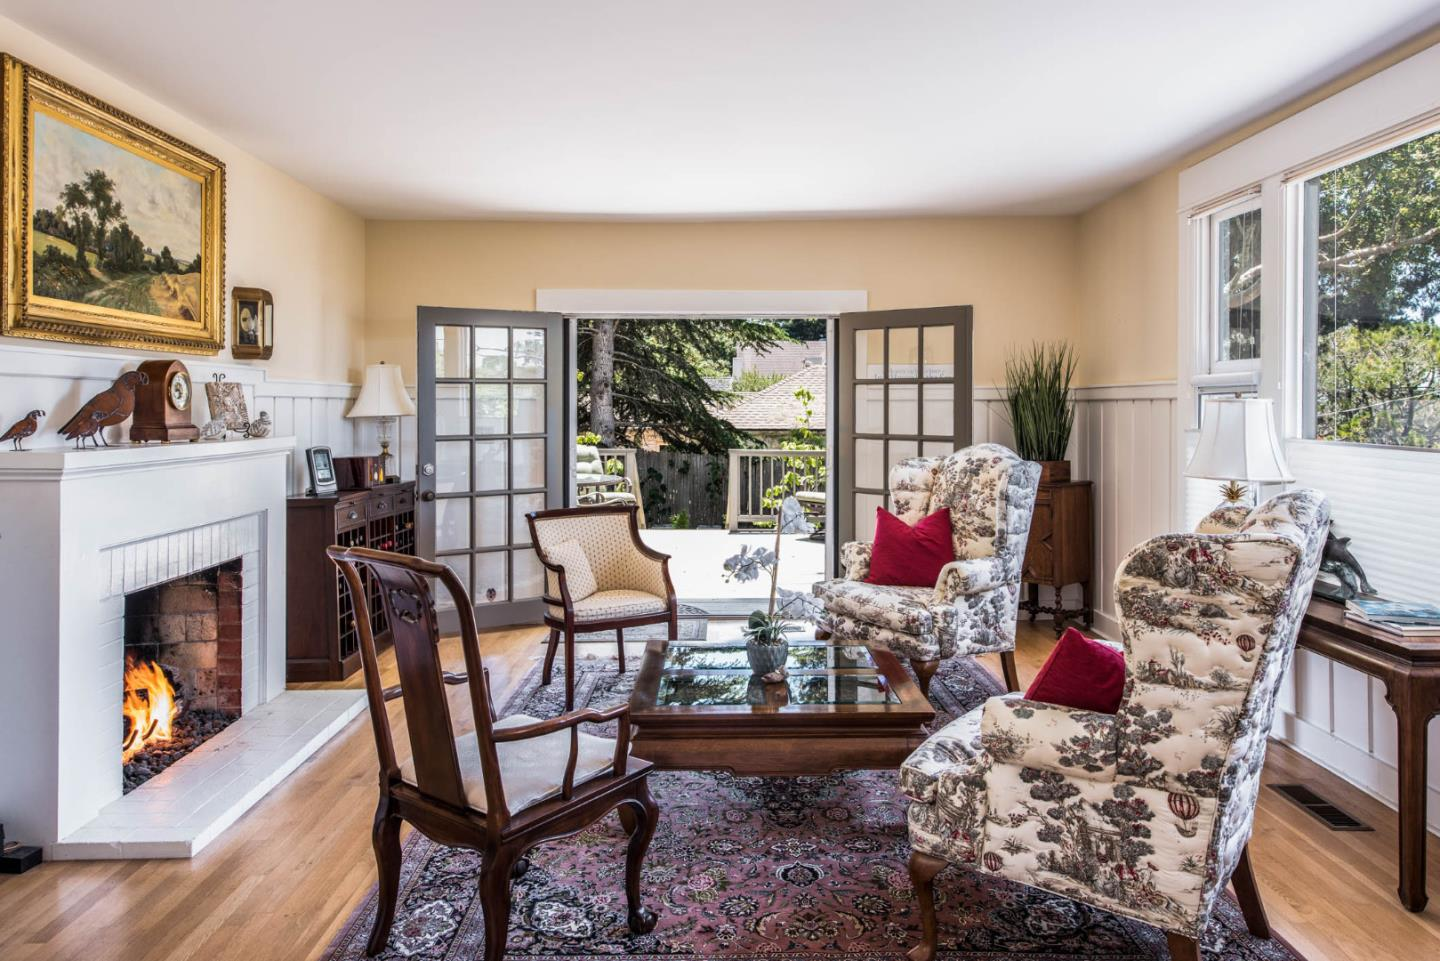 Additional photo for property listing at 8th Ave. 2SE of Monte Verde  Carmel, California 93921 United States